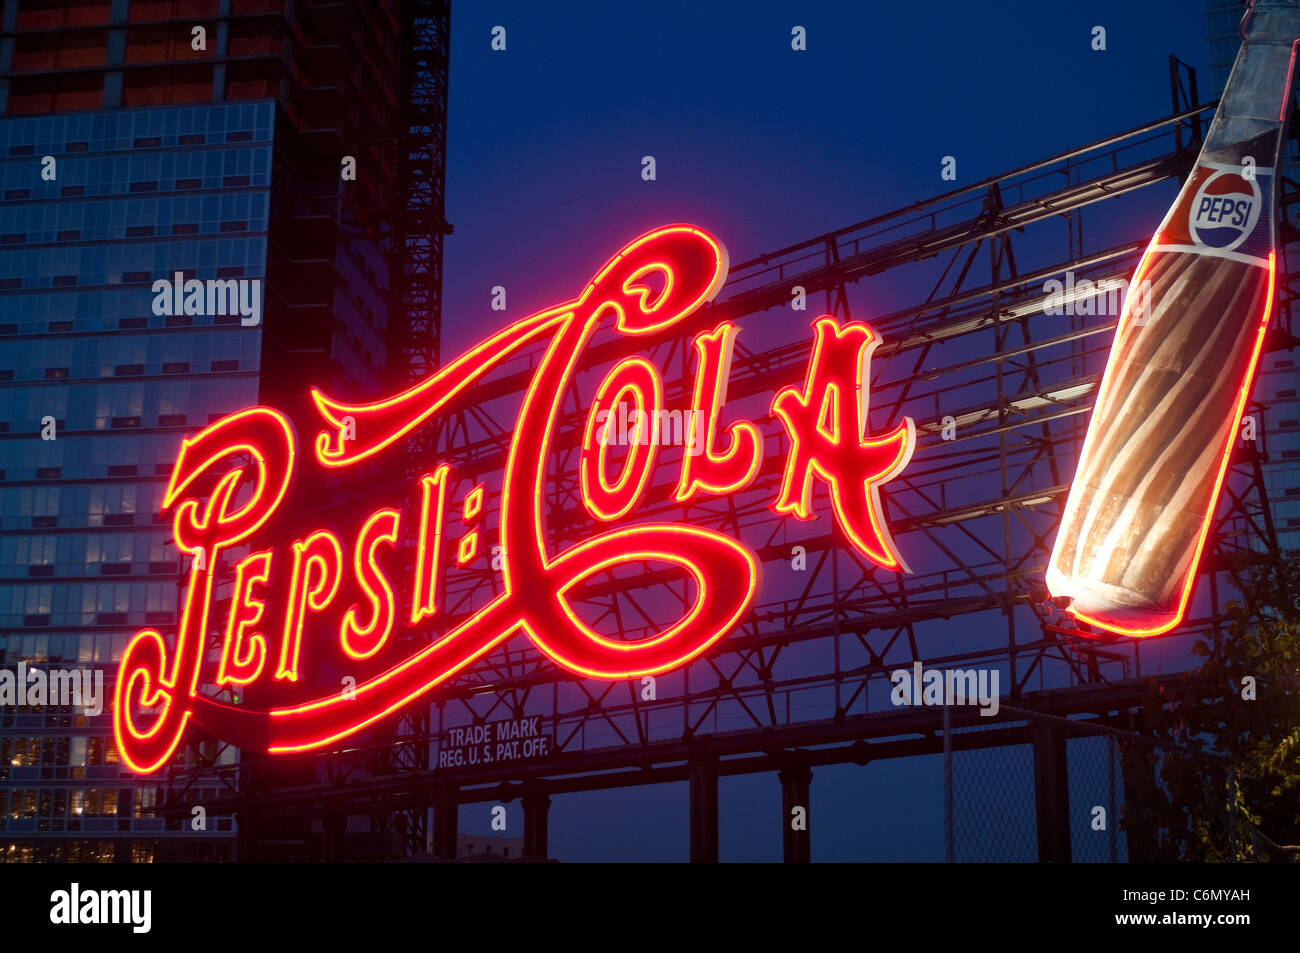 New York, NY - 30 August 2011 Pepsi Cola sign, Gantry Plaza - Stock Image